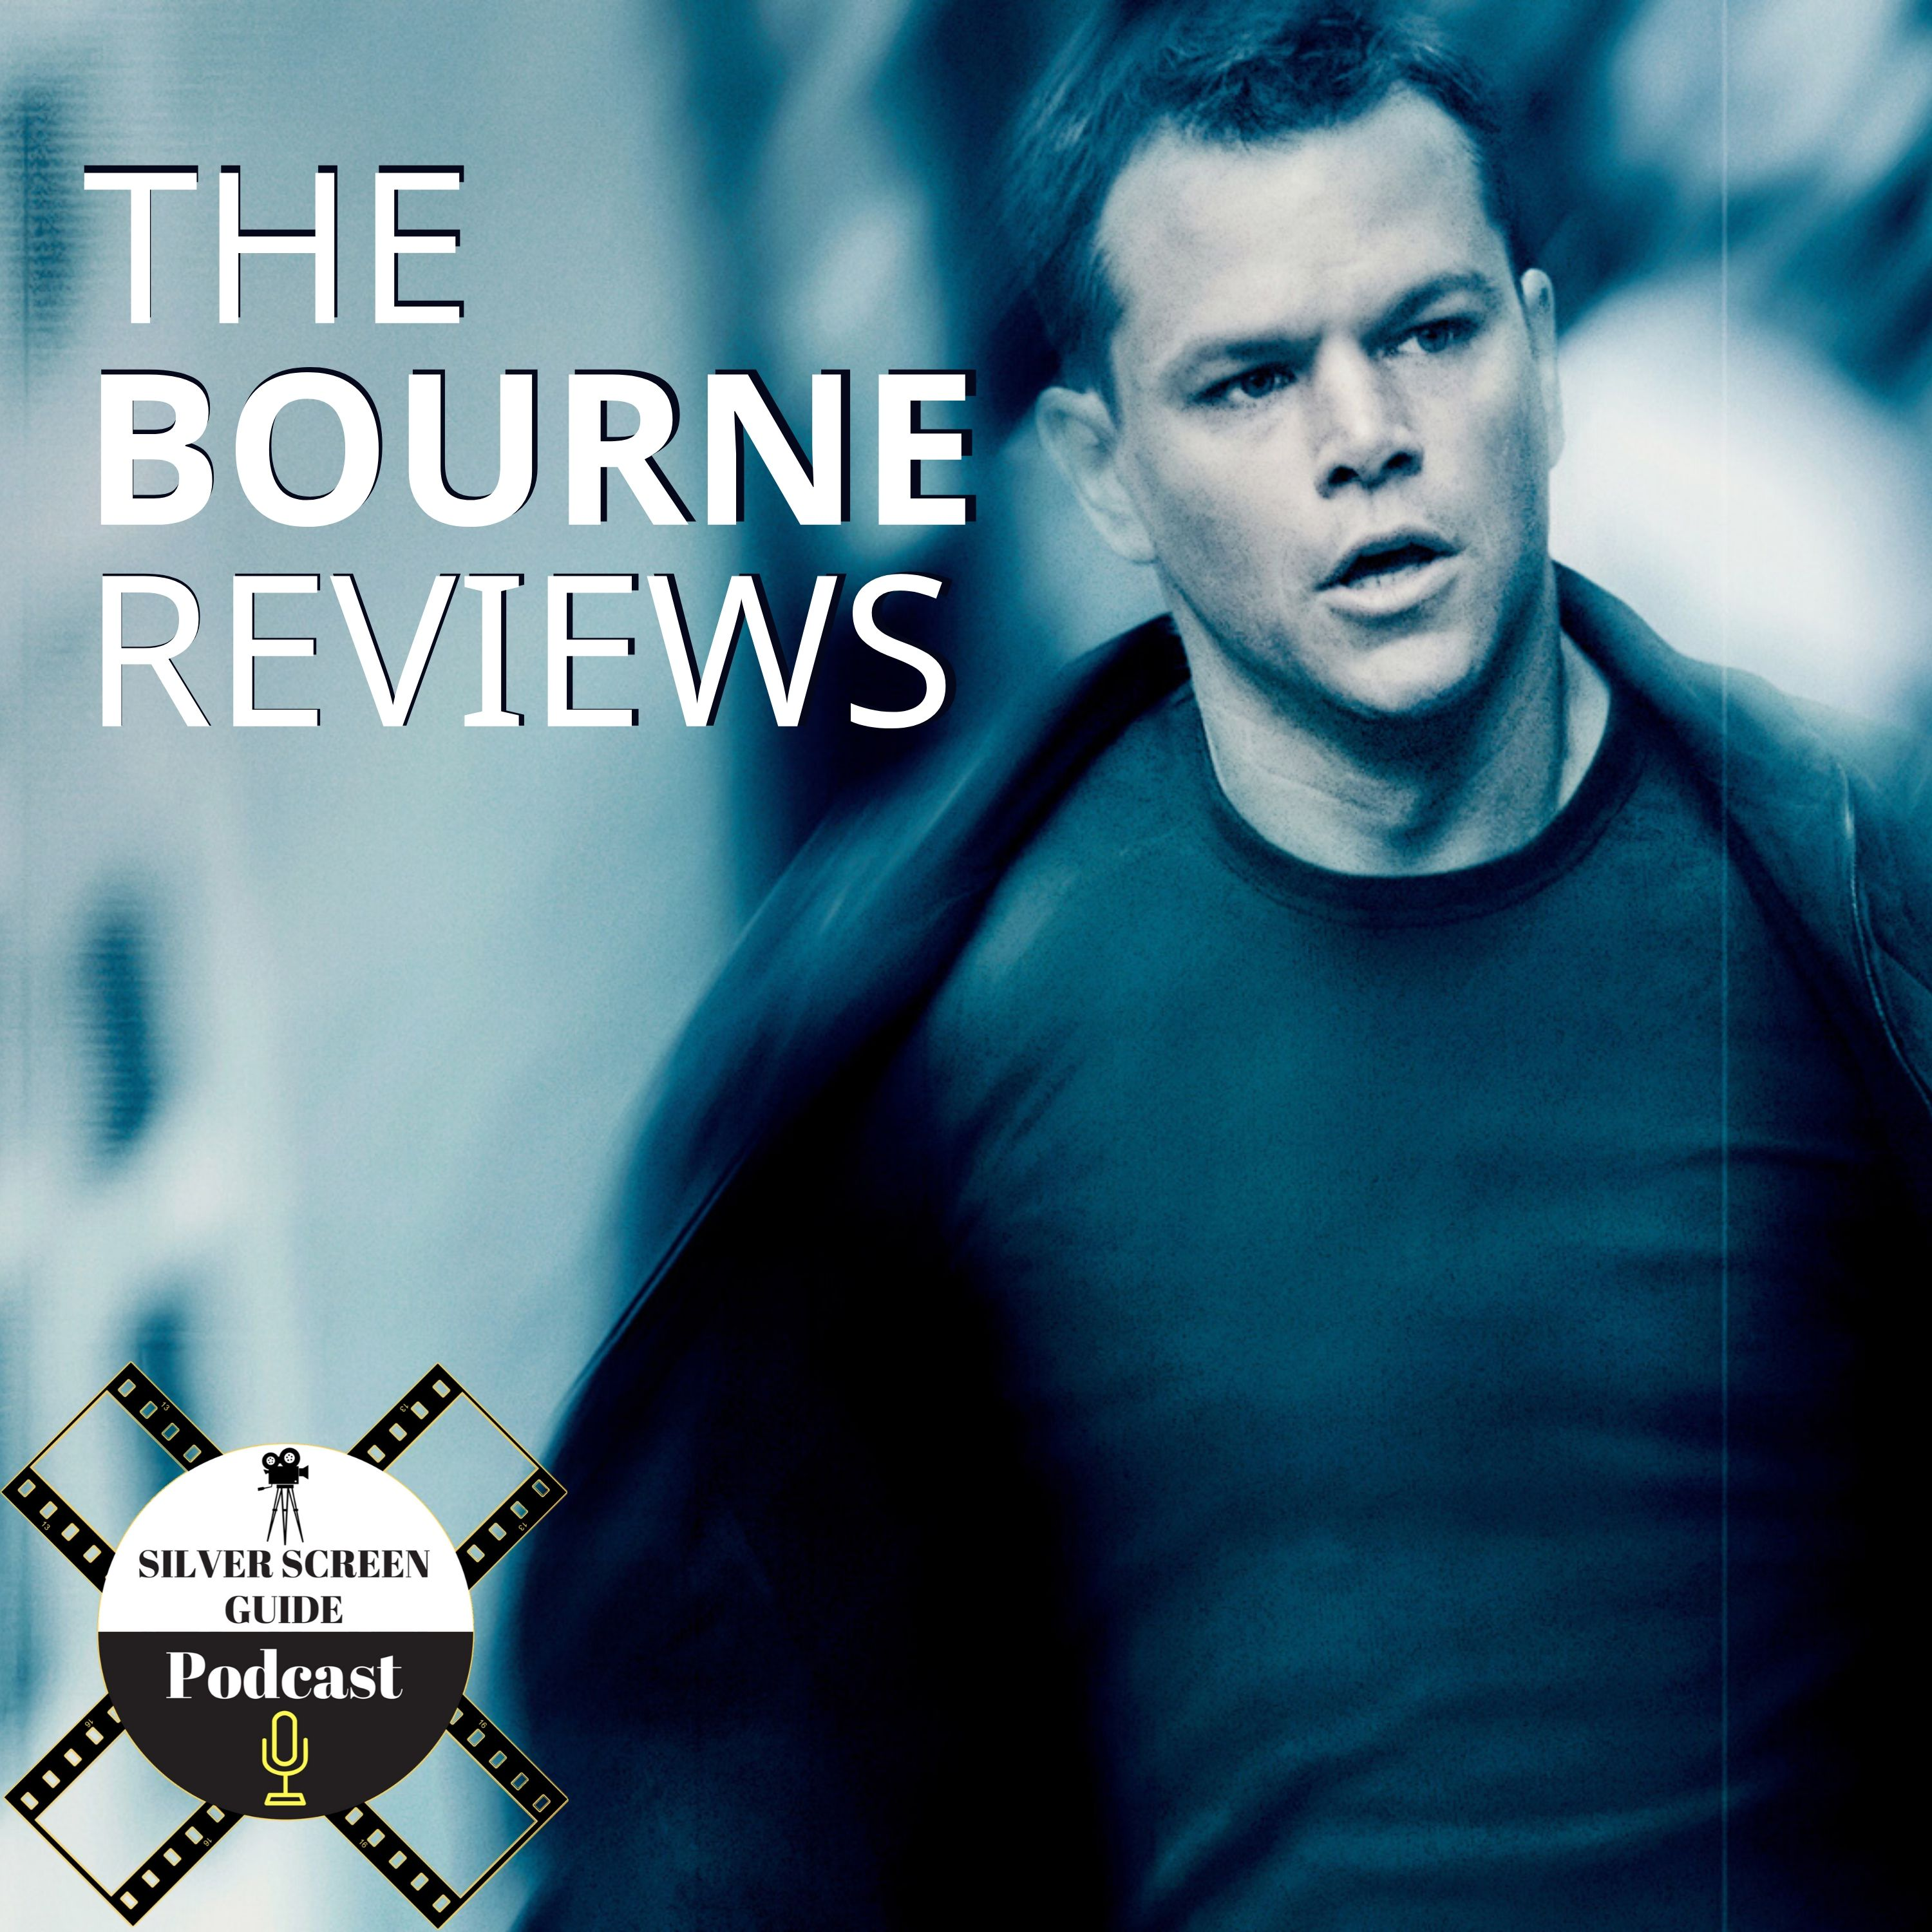 The Bourne Identity 2002 Movie Review First In Jason Bourne Movie Review Series